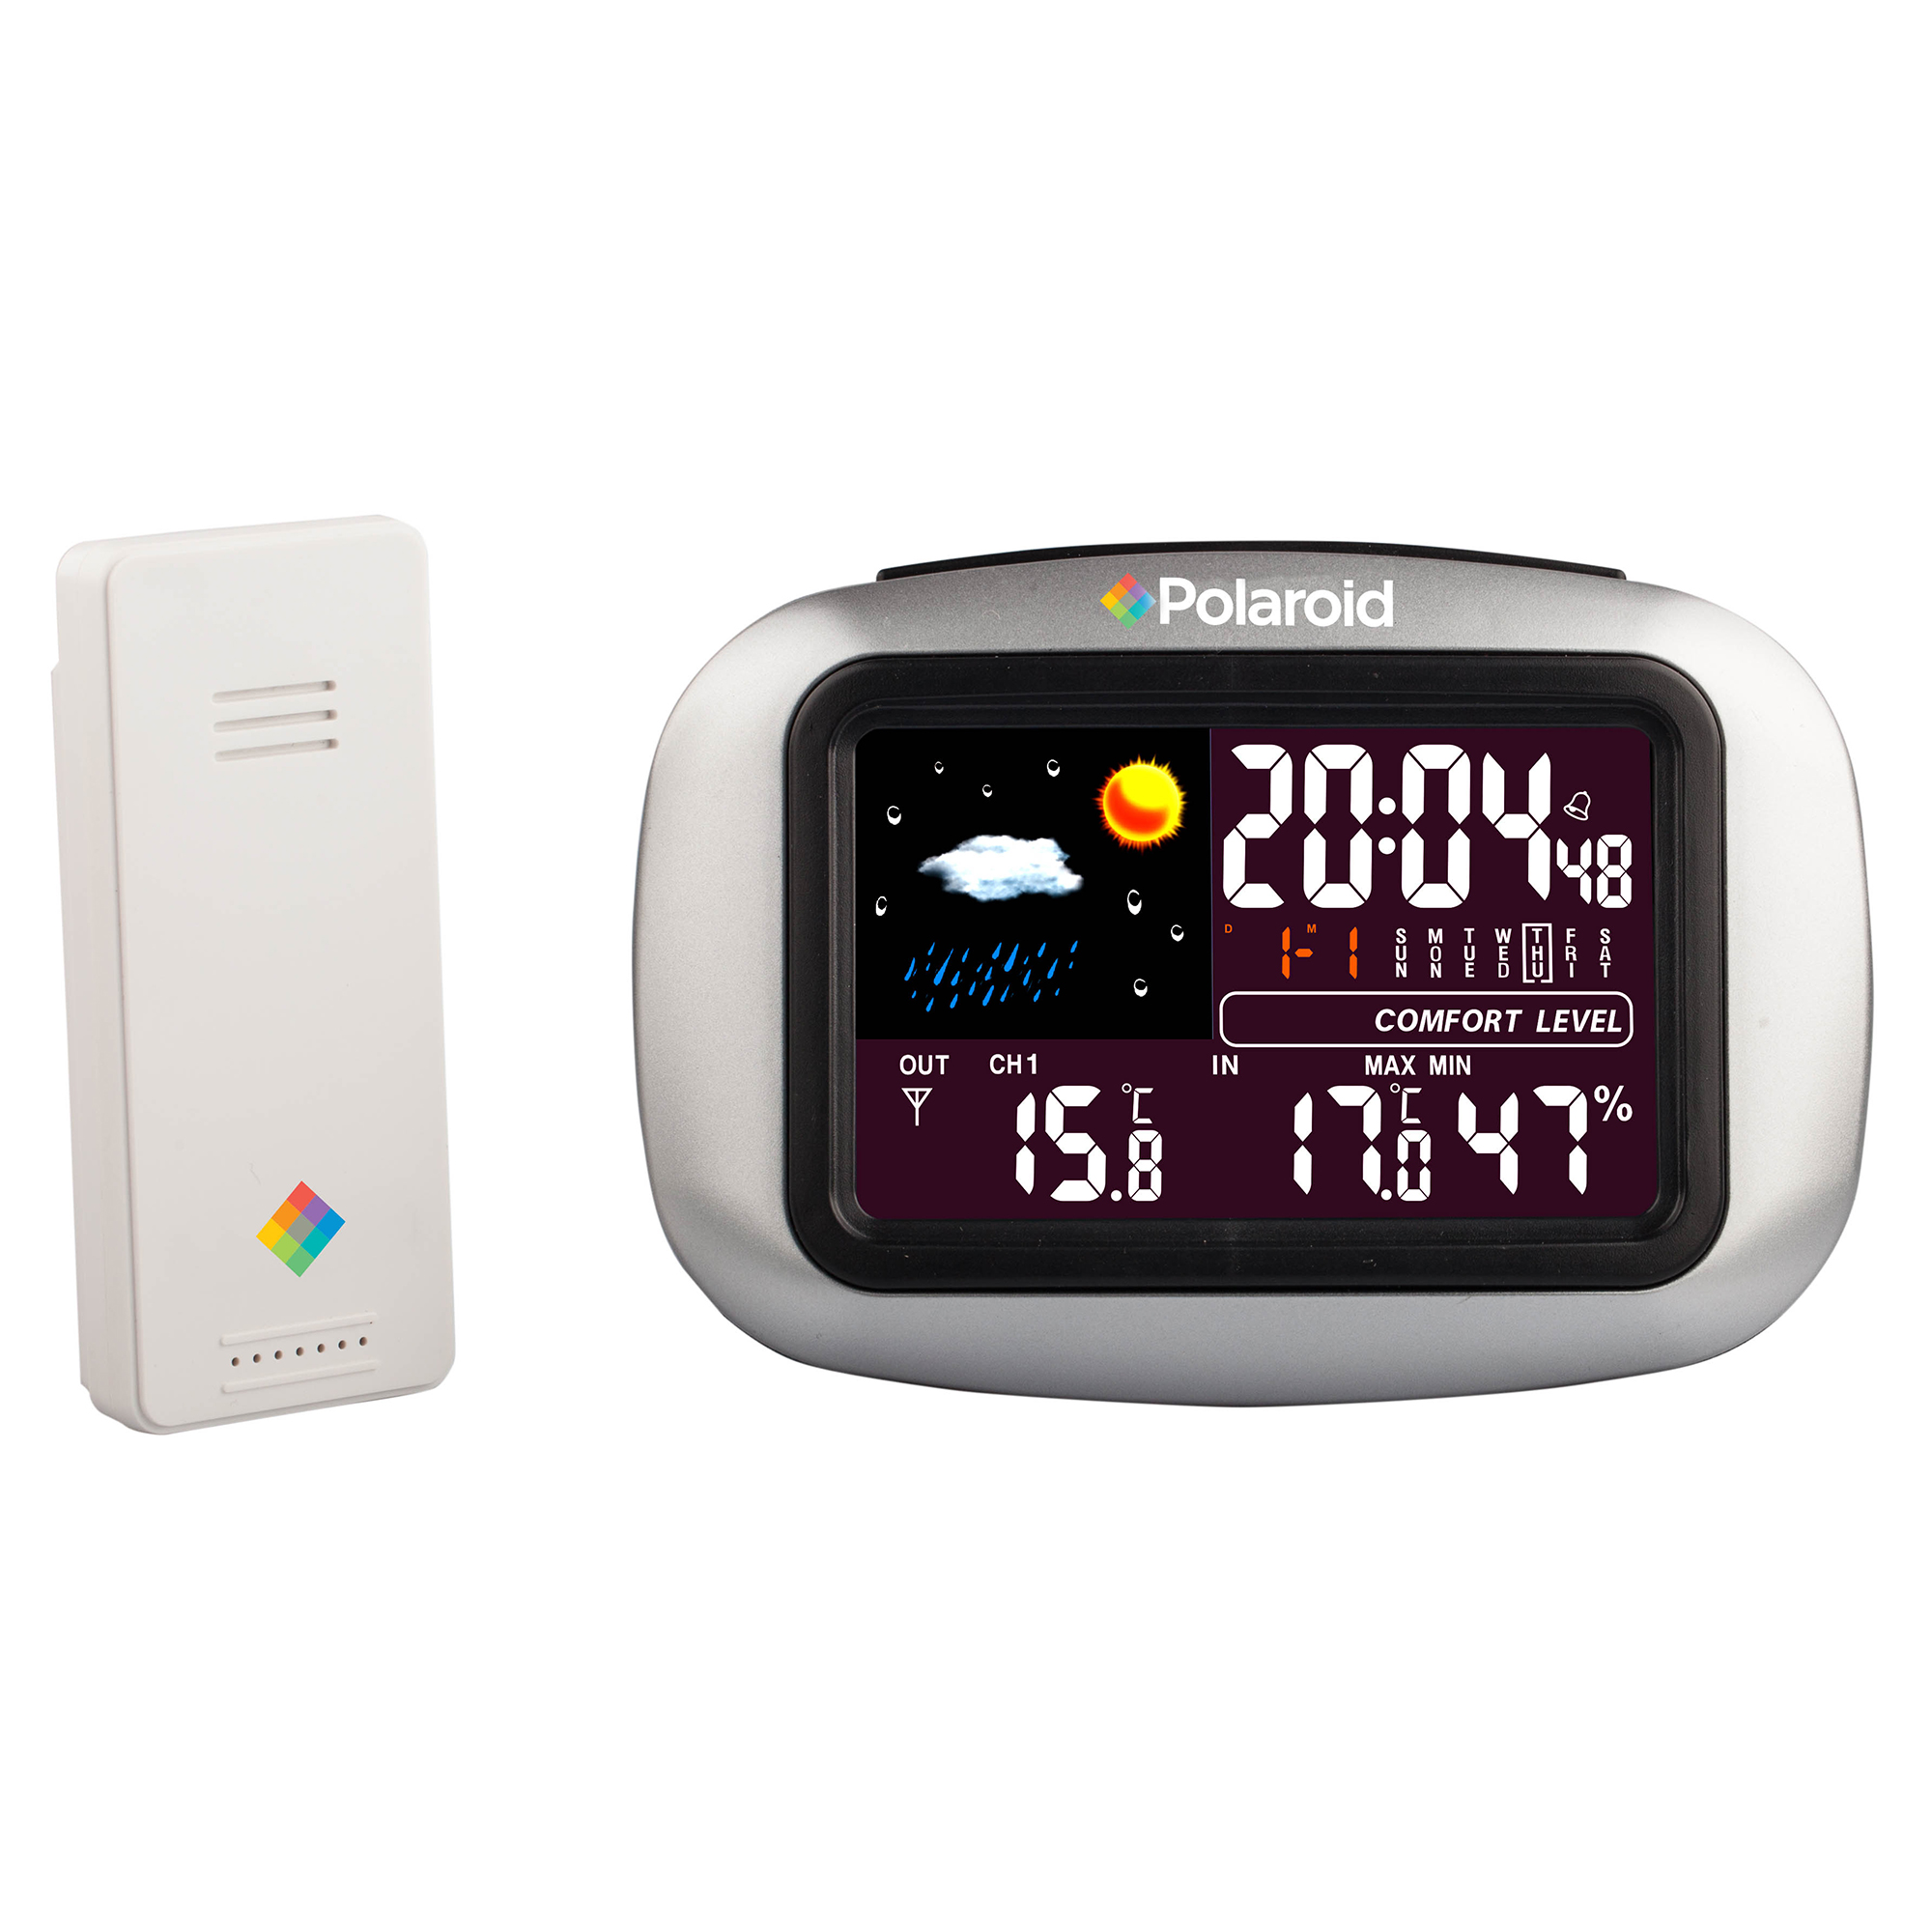 Polaroid Silver Wireless Weather Station Clock and Transmitter,LCD Screen, Temperature Display in Celsius and Fahrenheit by Polaroid